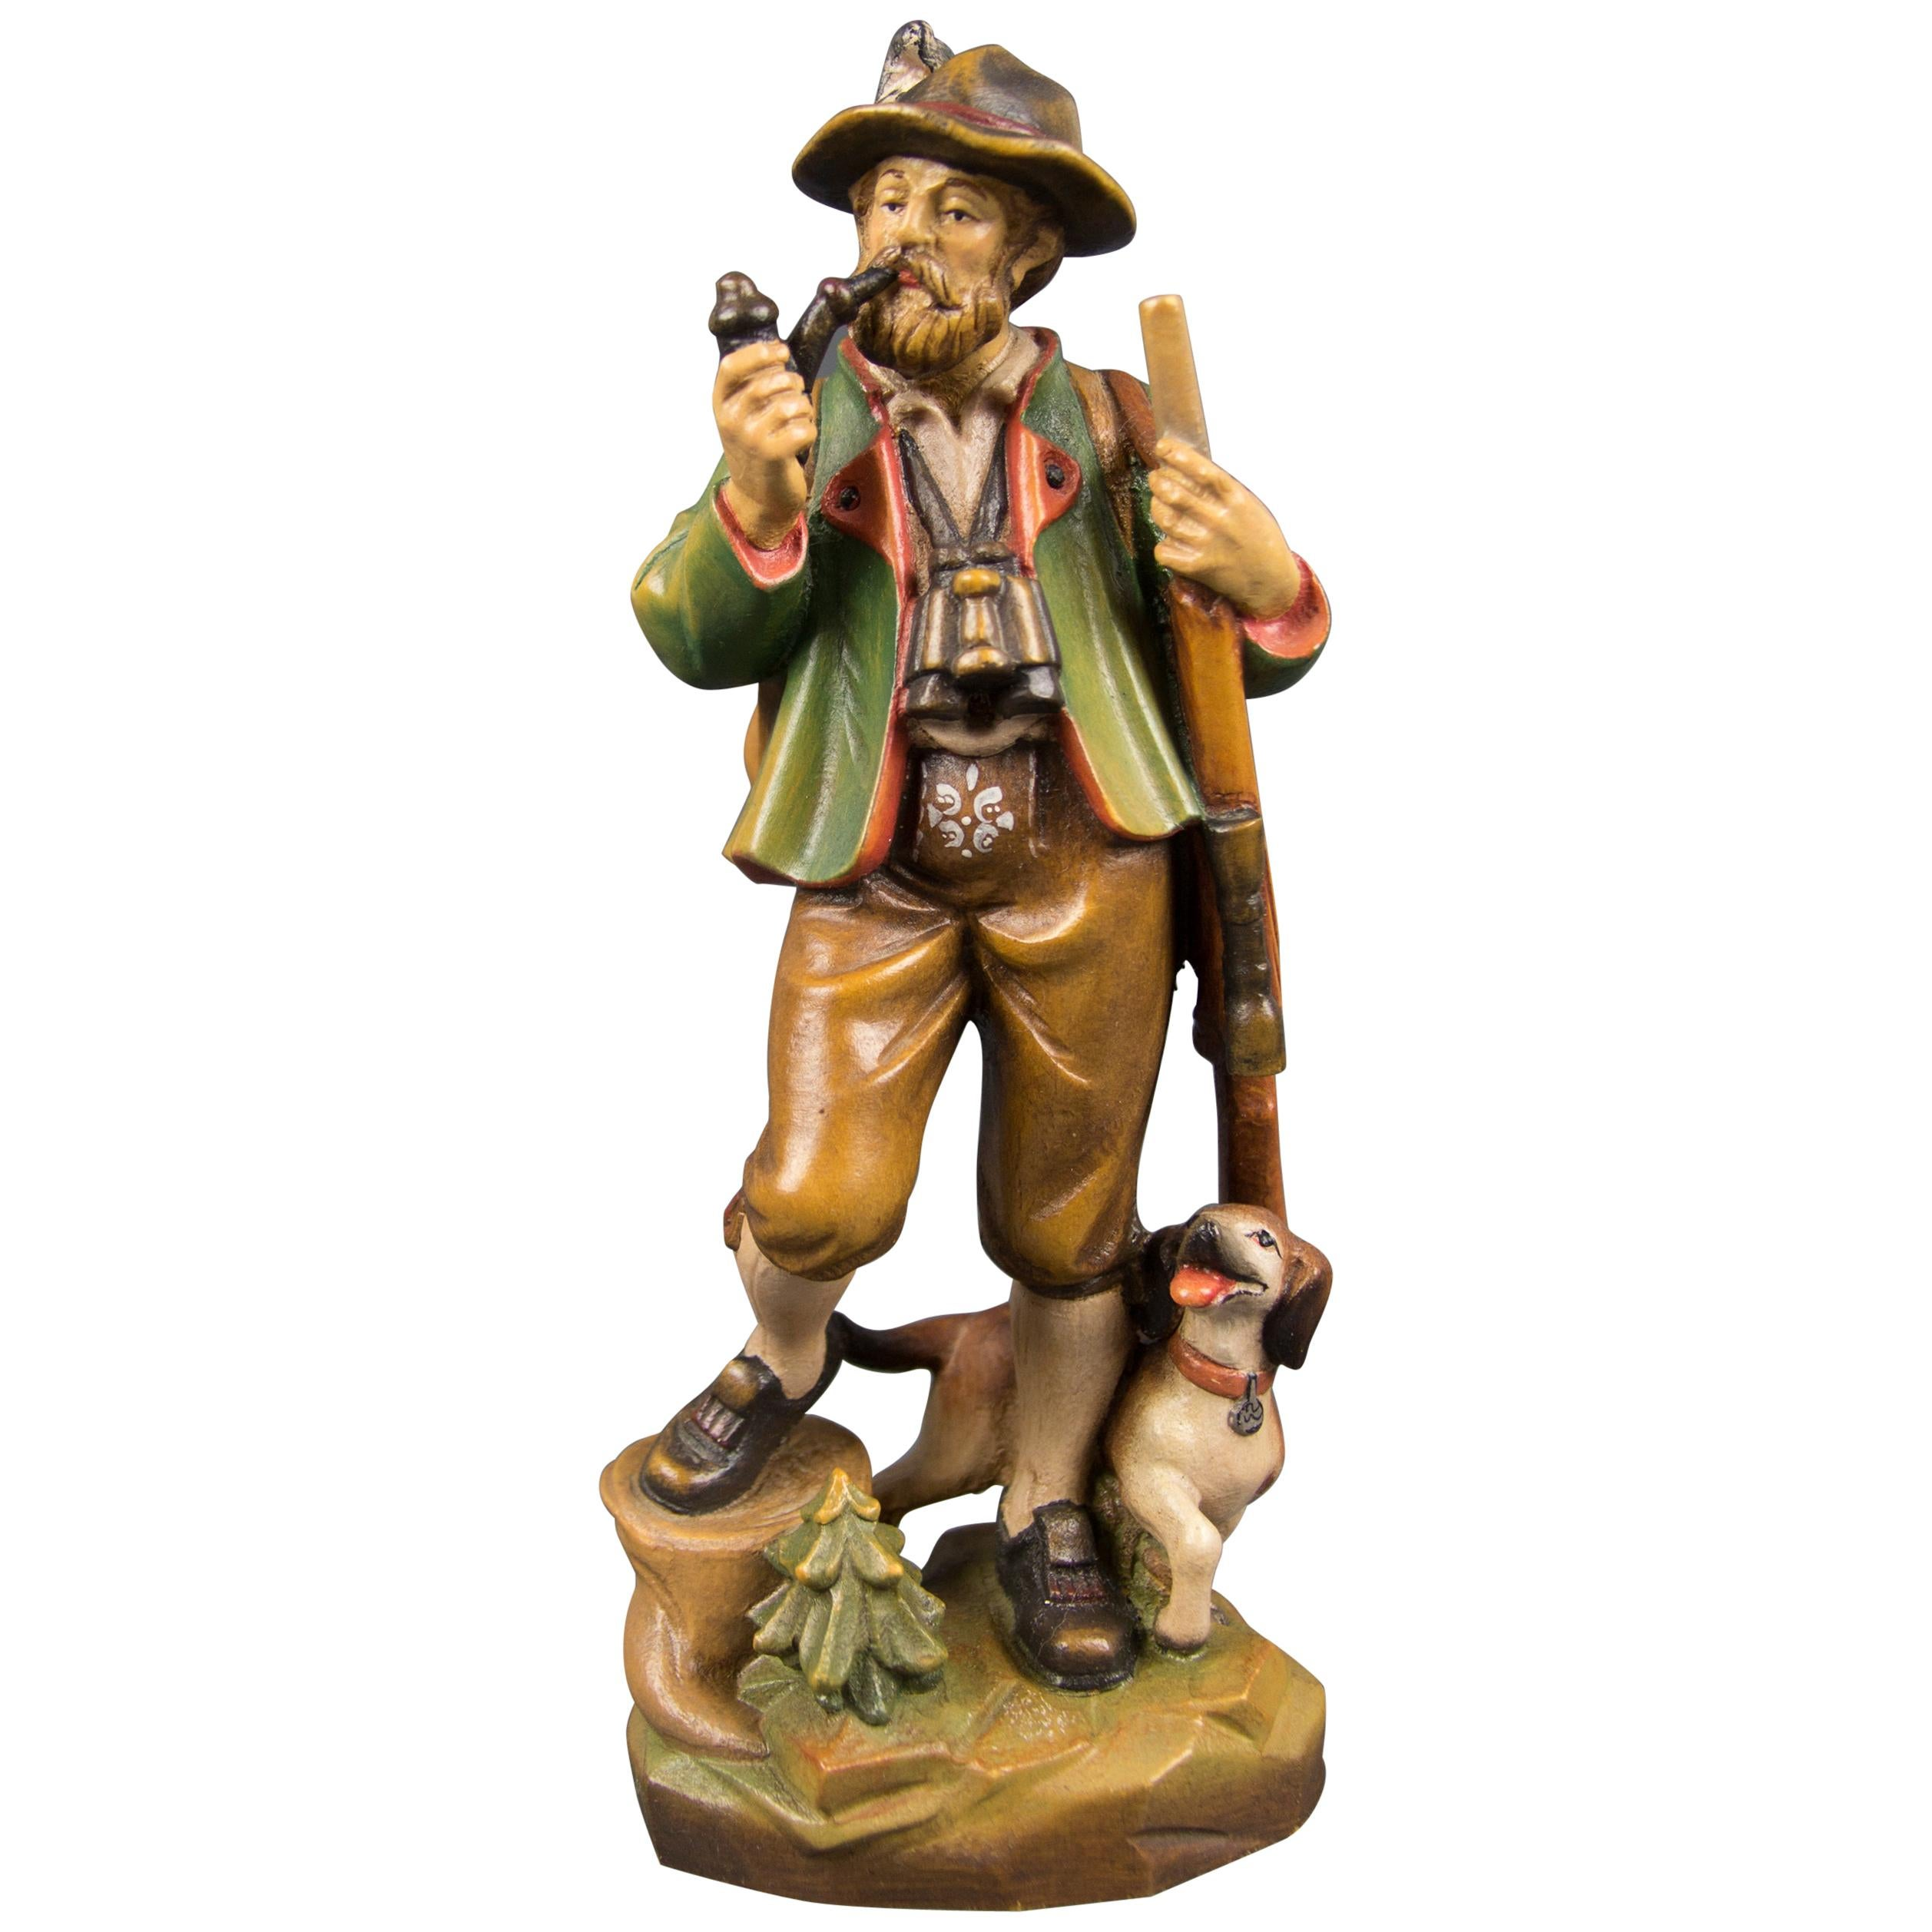 Hand Carved and Hand Painted Wooden Sculpture of a Hunter with Dog